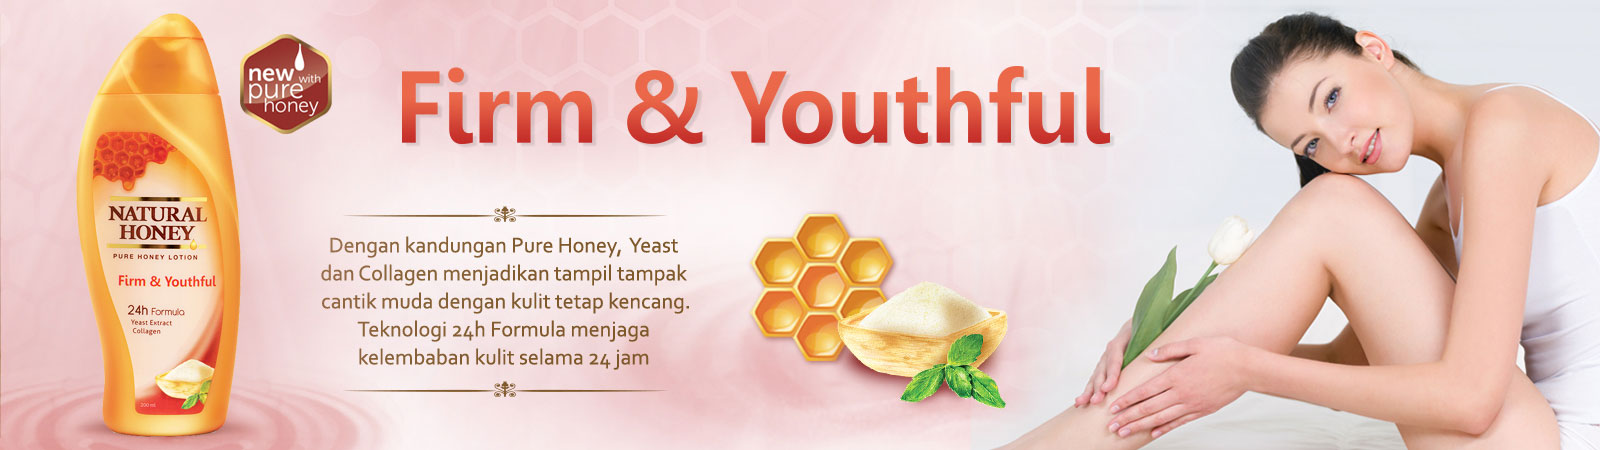 Natural Honey Firm & Youthful